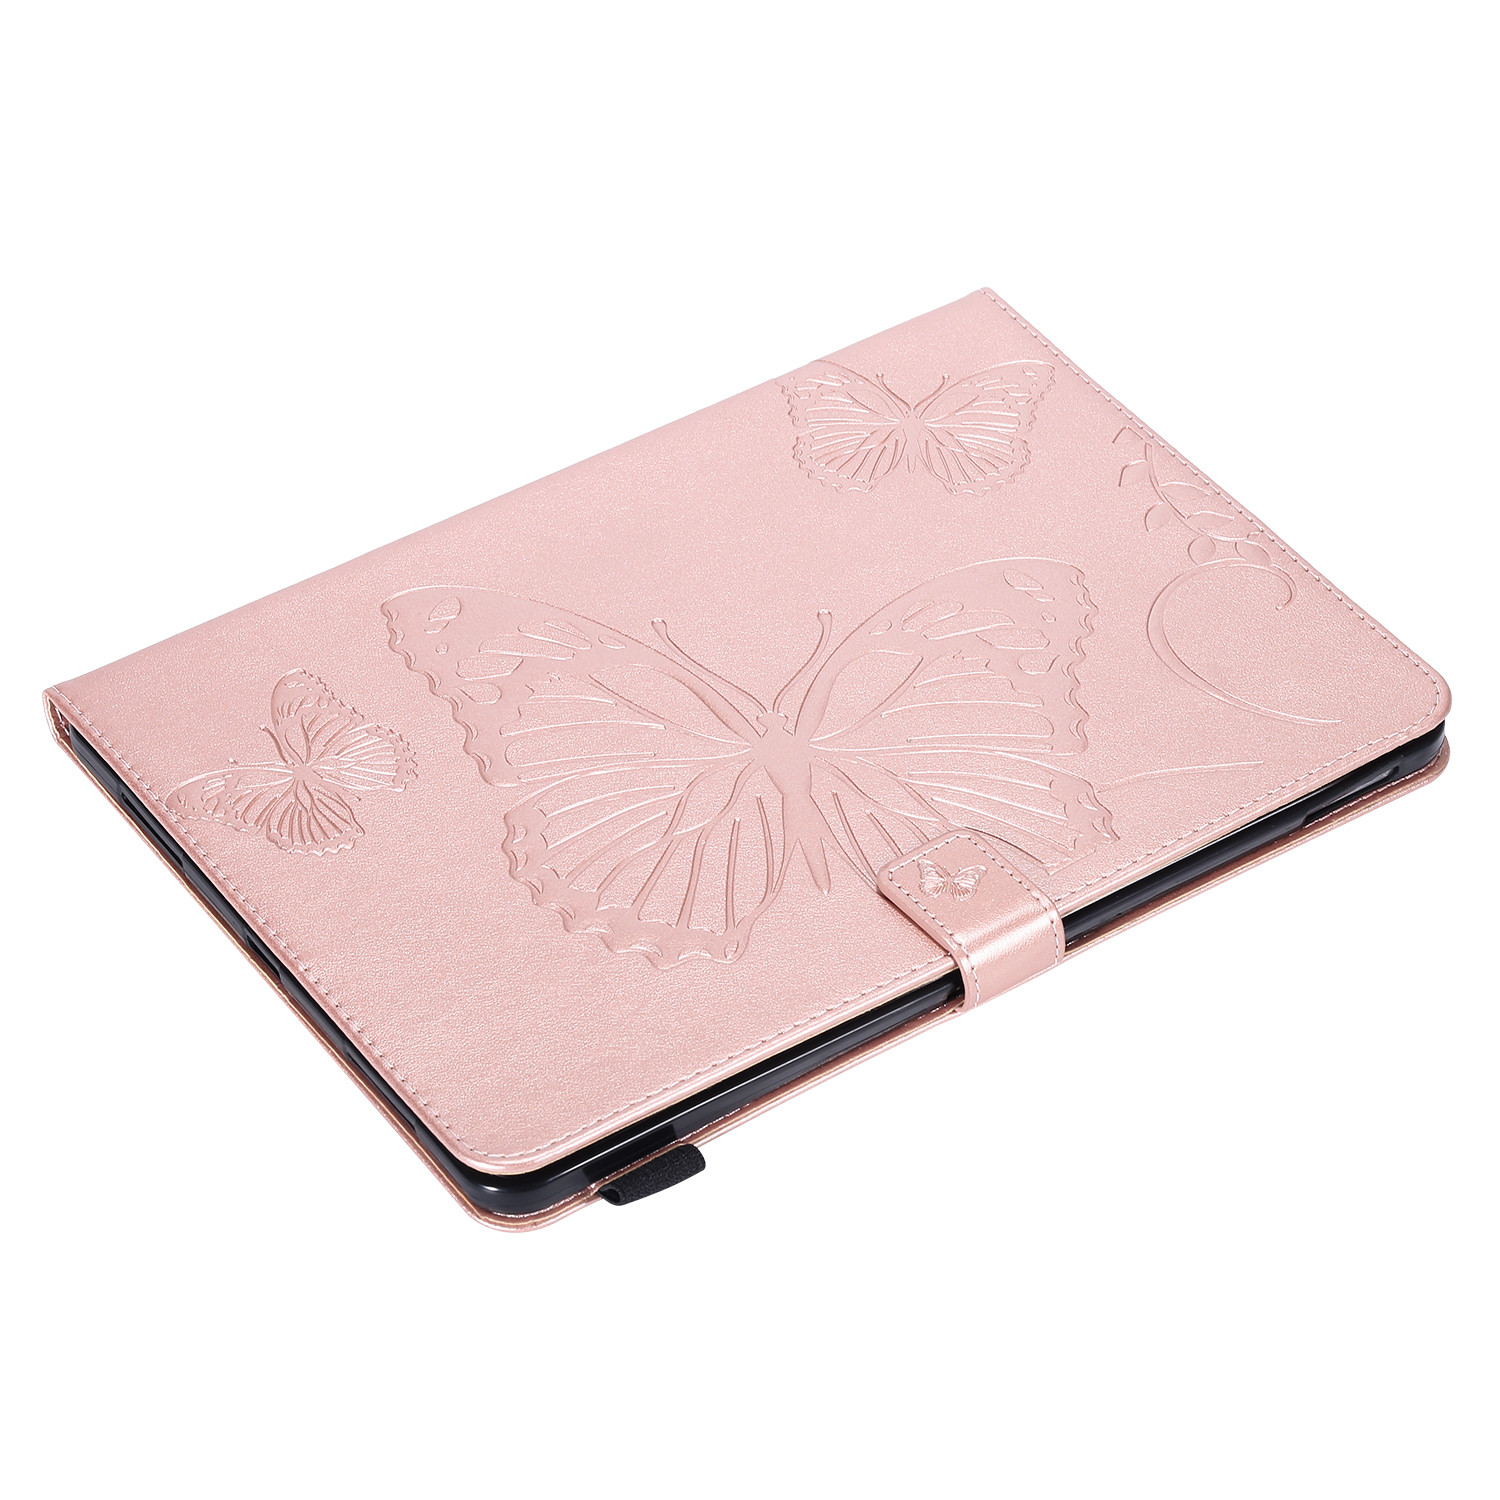 3 Green Butterfly Tablet Fundas For iPad Pro 12 9 Case 2020 2018 Folding Folio Embossed Cover For